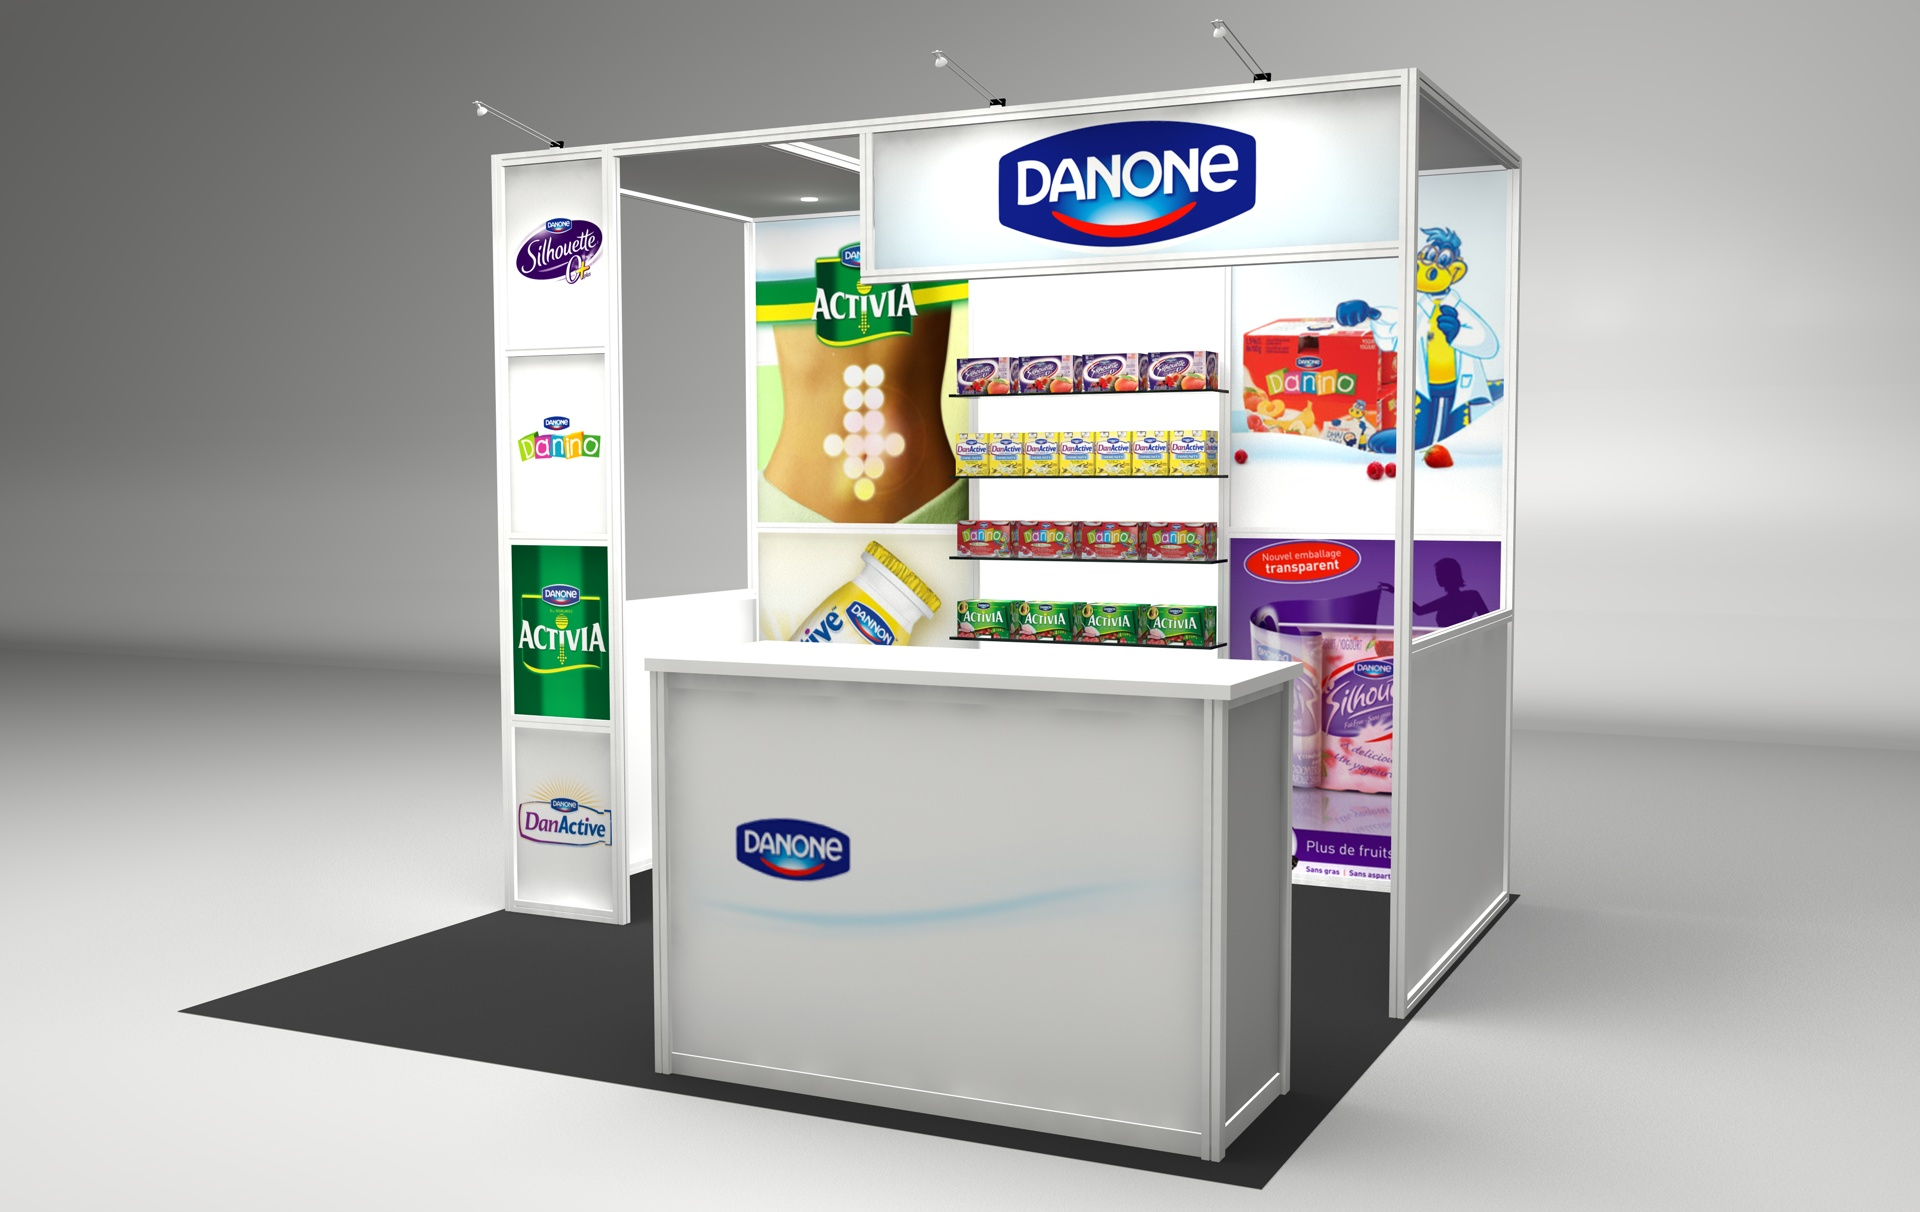 Danone 10' x 10' trade show booth rental with printed graphics